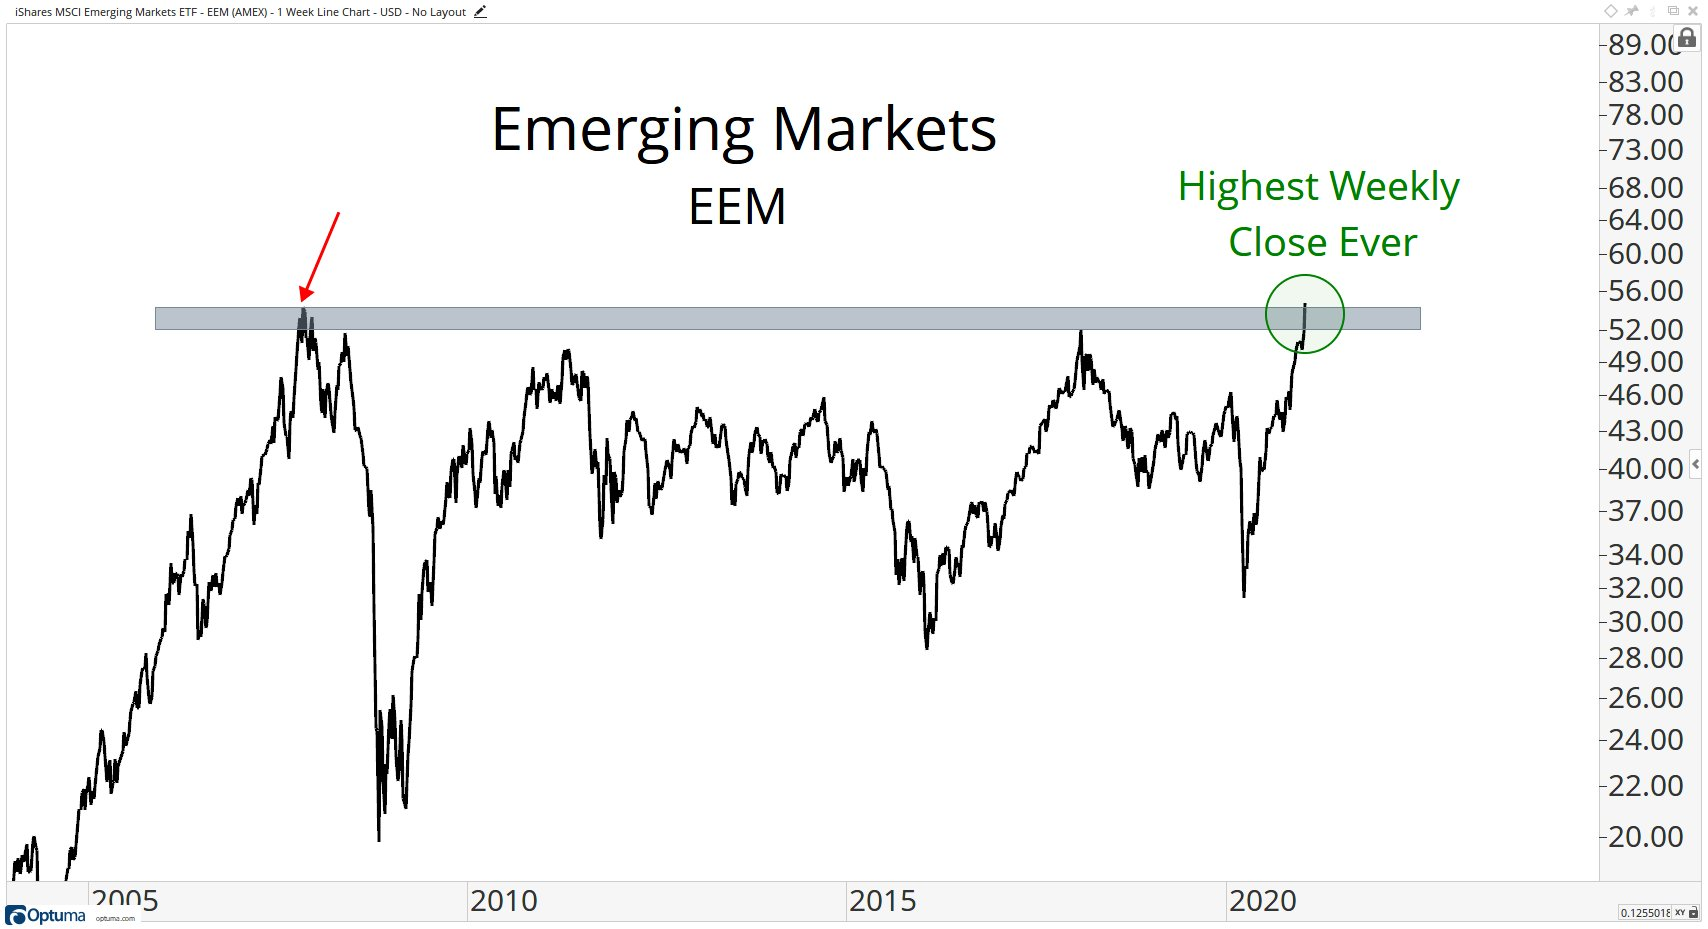 Emerging markets highest weekly close